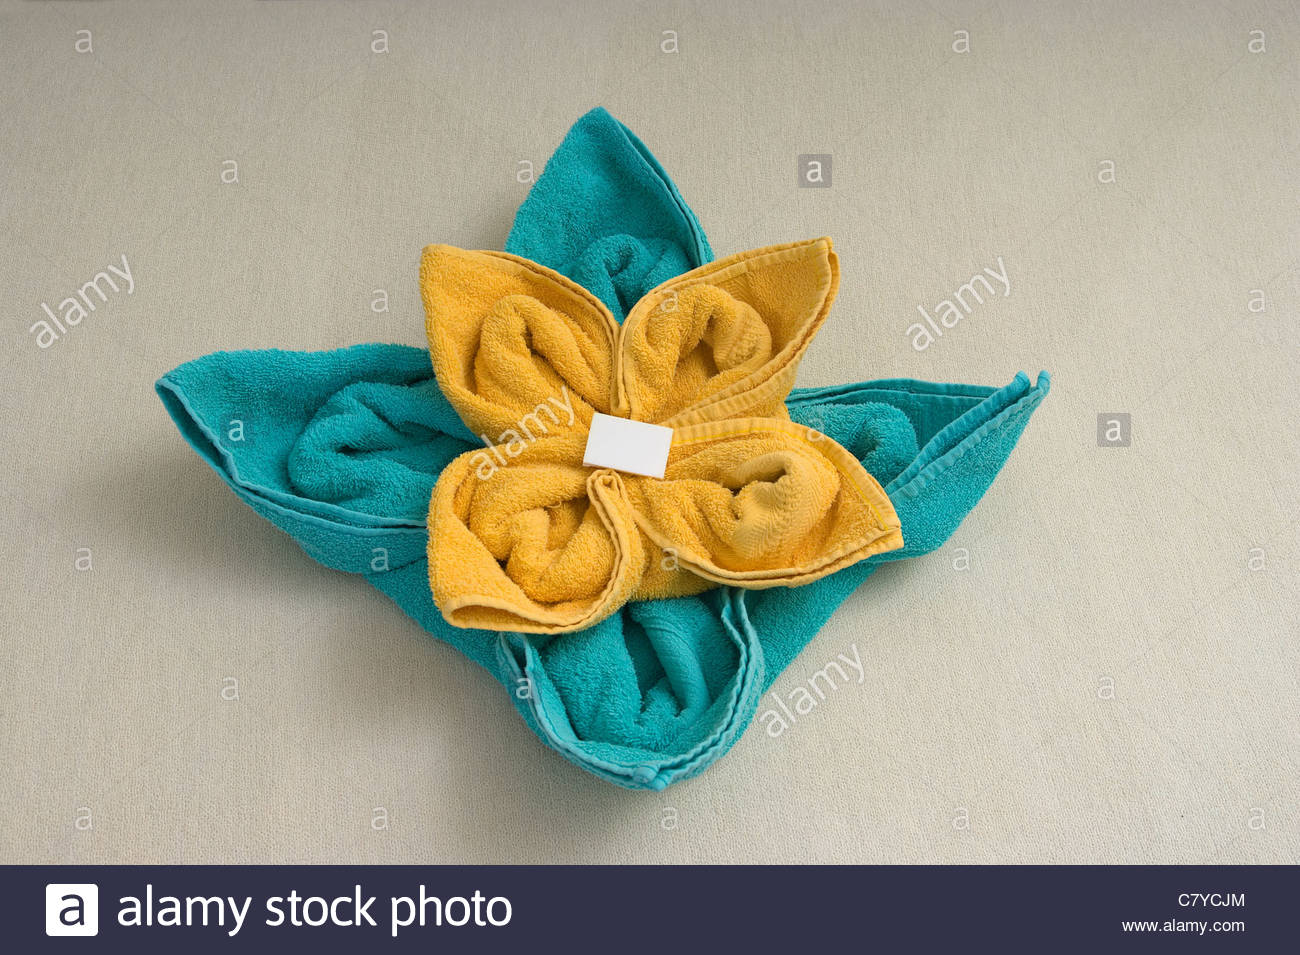 yellow and turquoise towel arrange flower - Stock Image